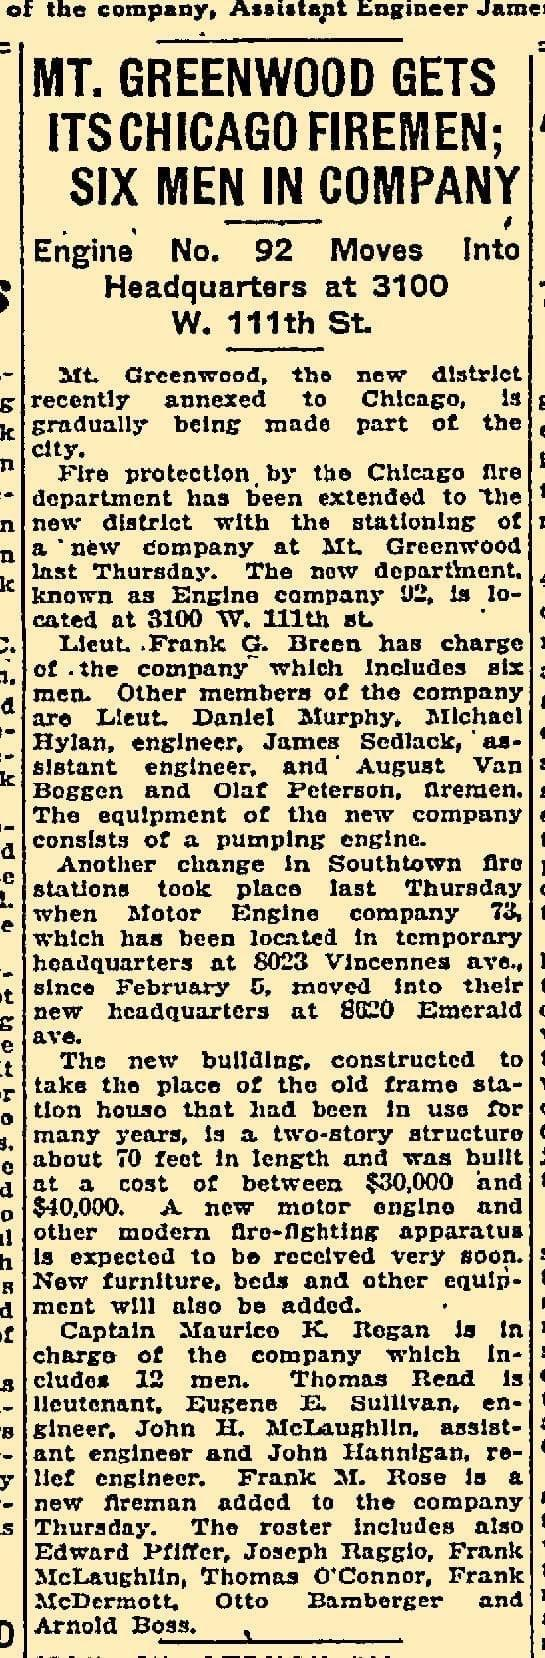 Vintage news article about Chicago Engine 92 being organized along with Engine 73's new firehouse. The article is from 1927.